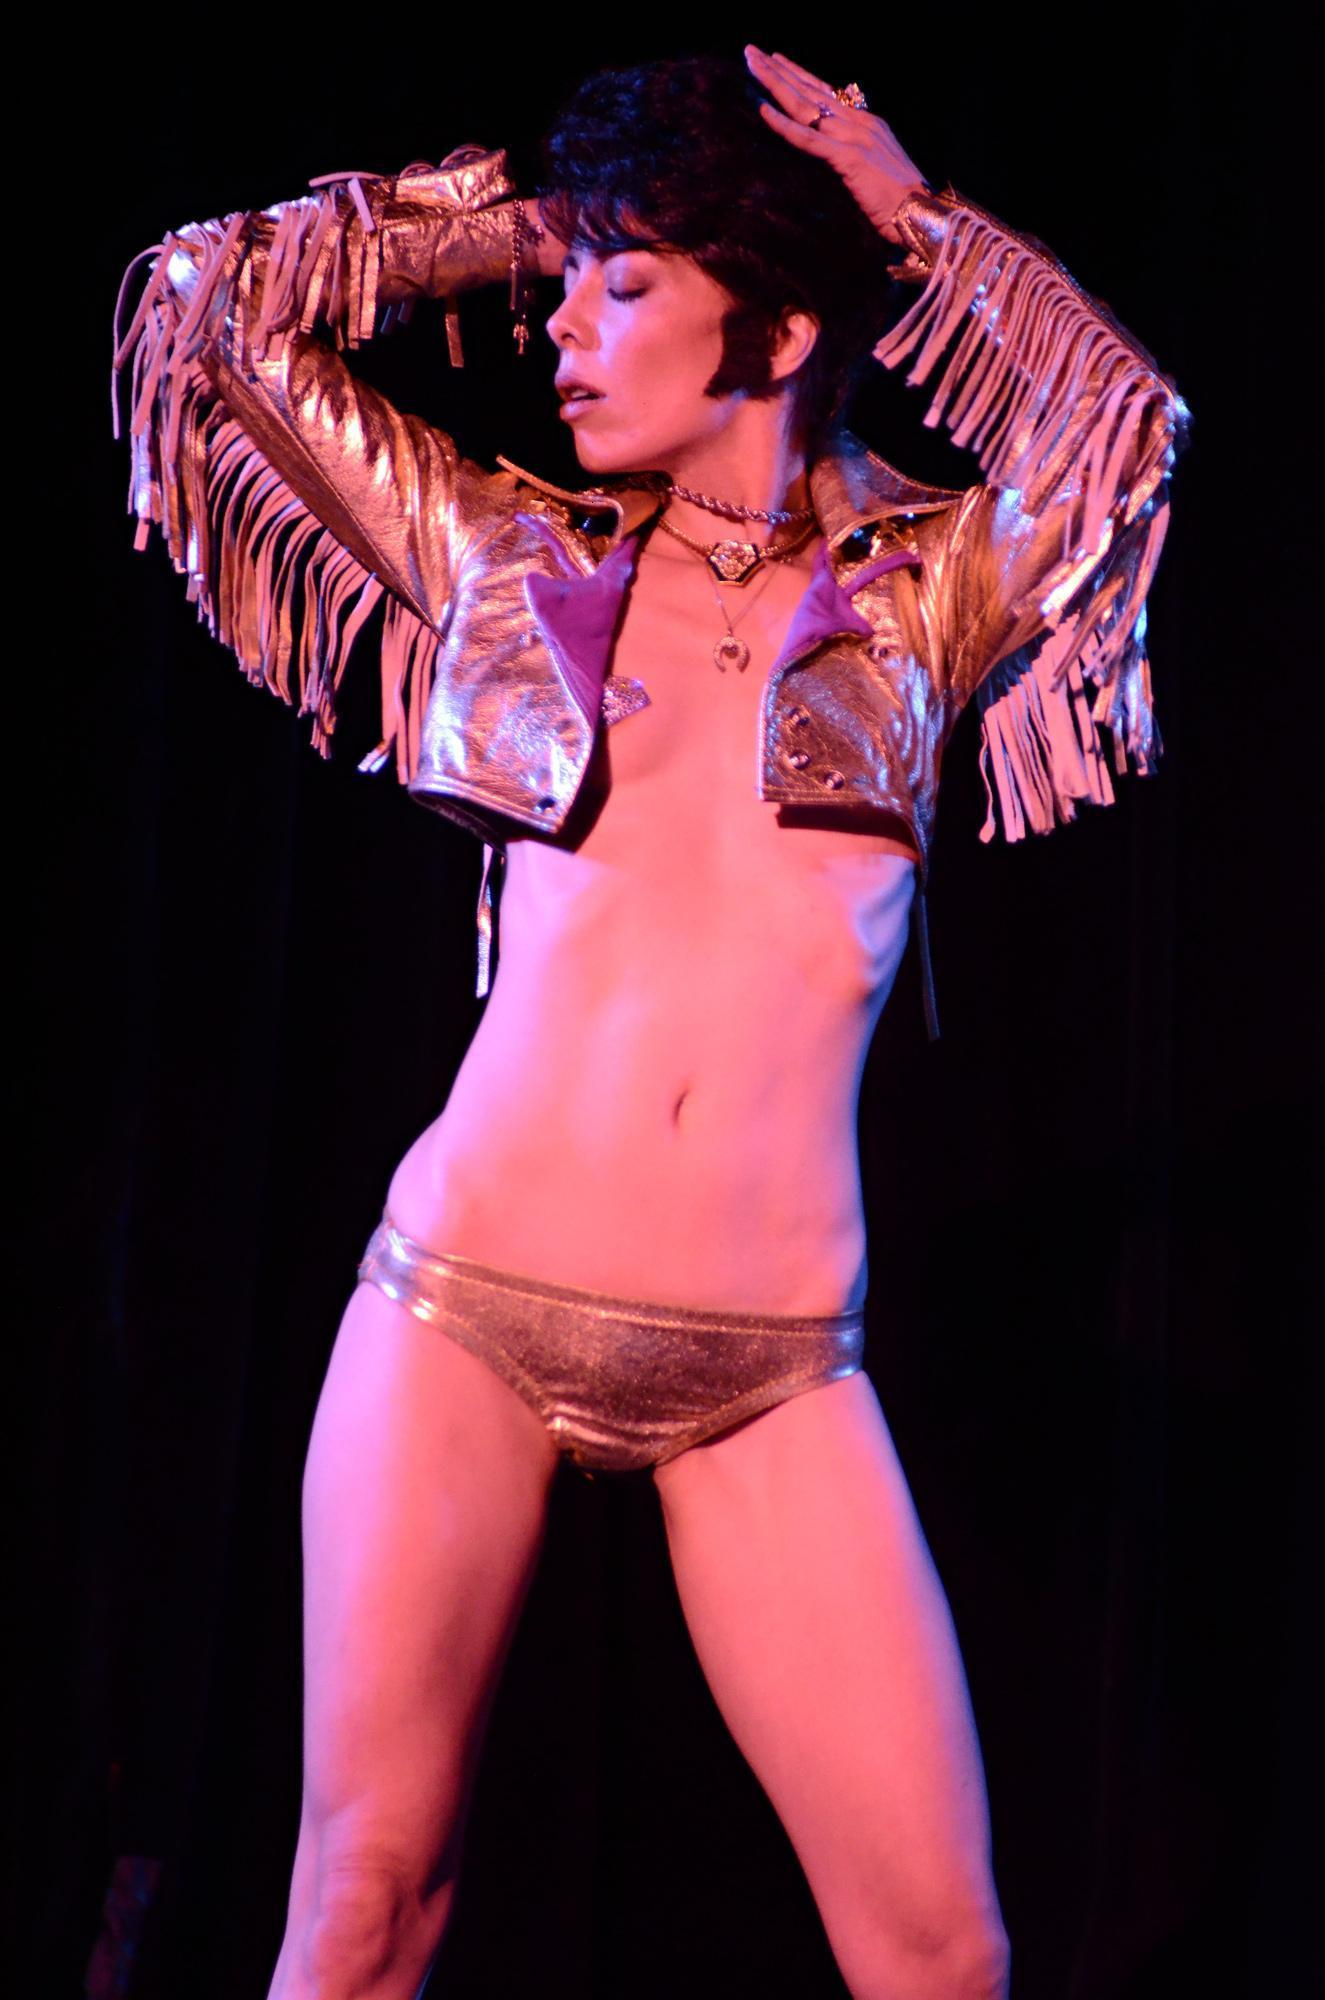 Elvis tribute act by Diamondback Annie - photo by Aaron Settipane